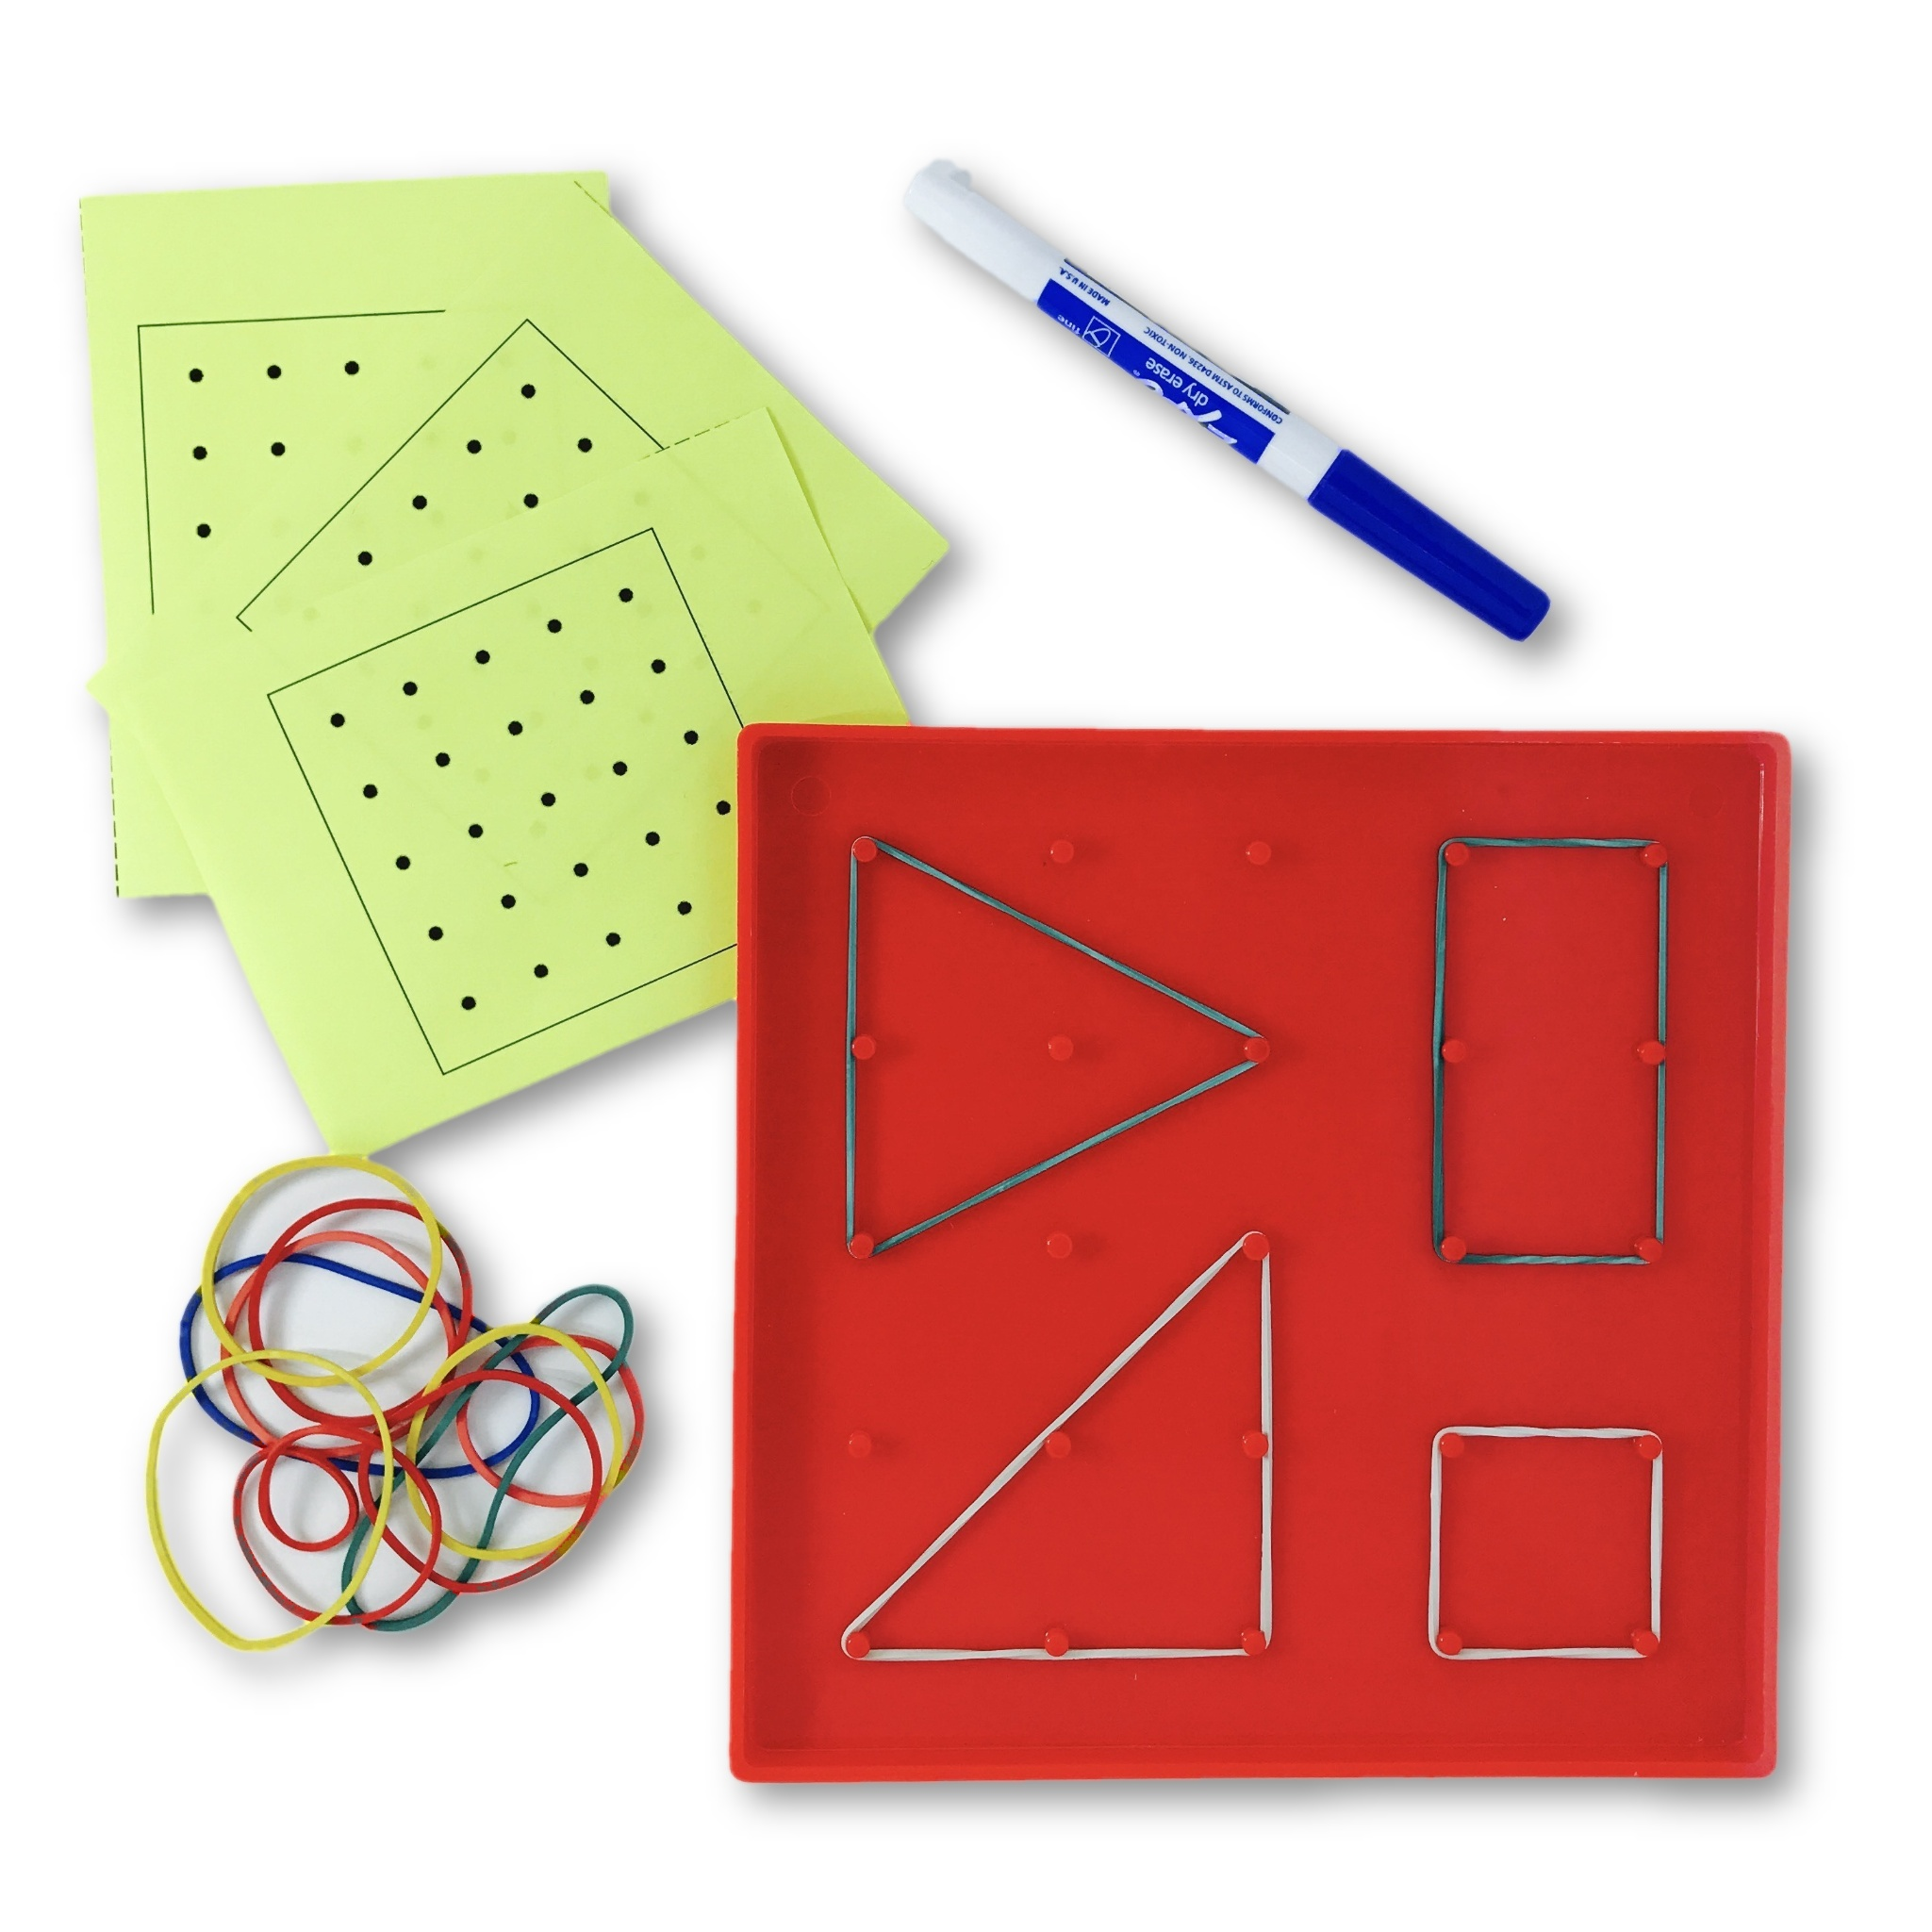 Kindergarten Geometry - Shapes on the Geoboard